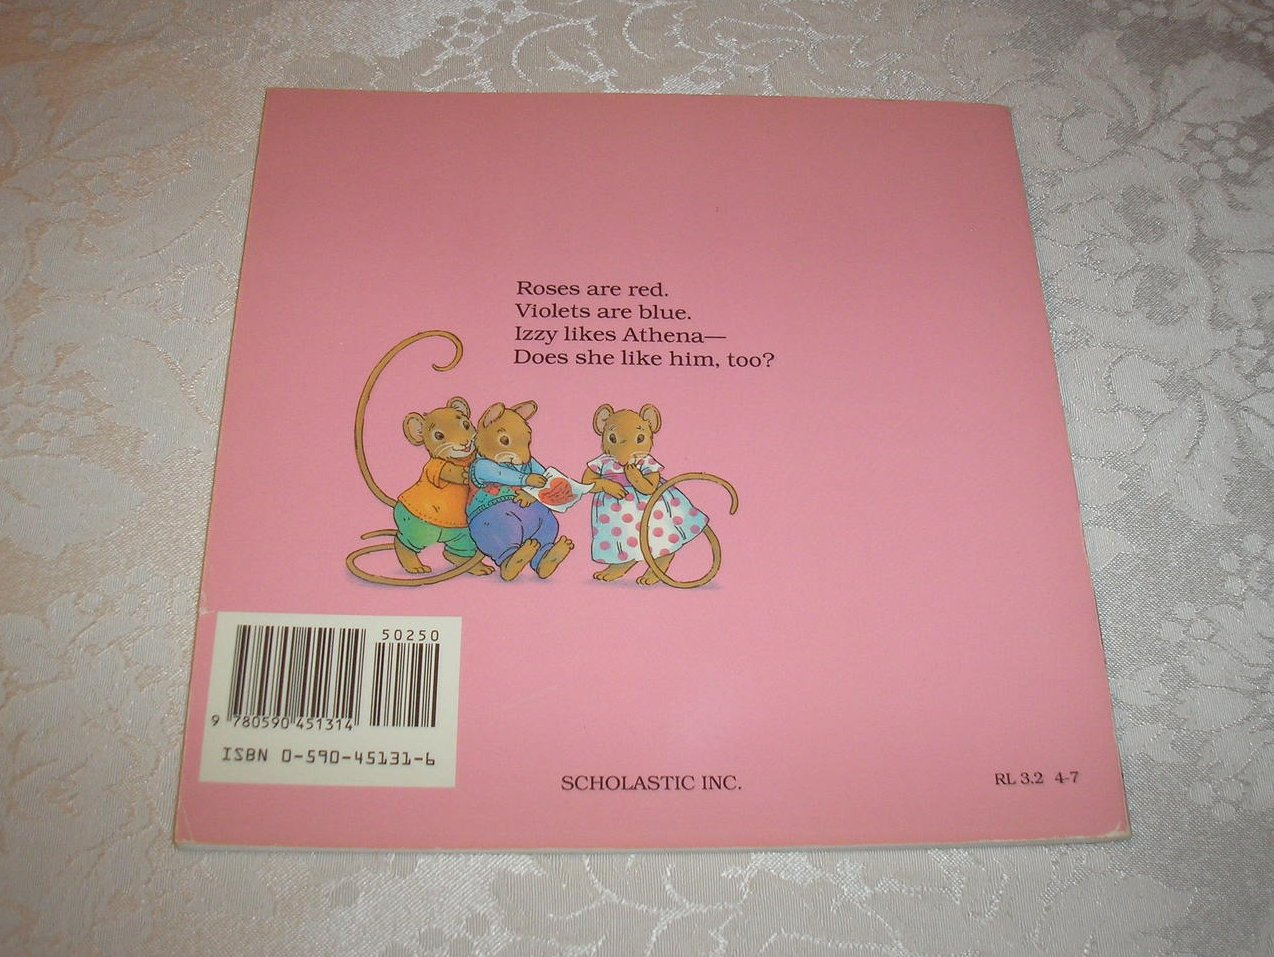 Image 5 of Be My Valentine M.J. Carr Good Softcover